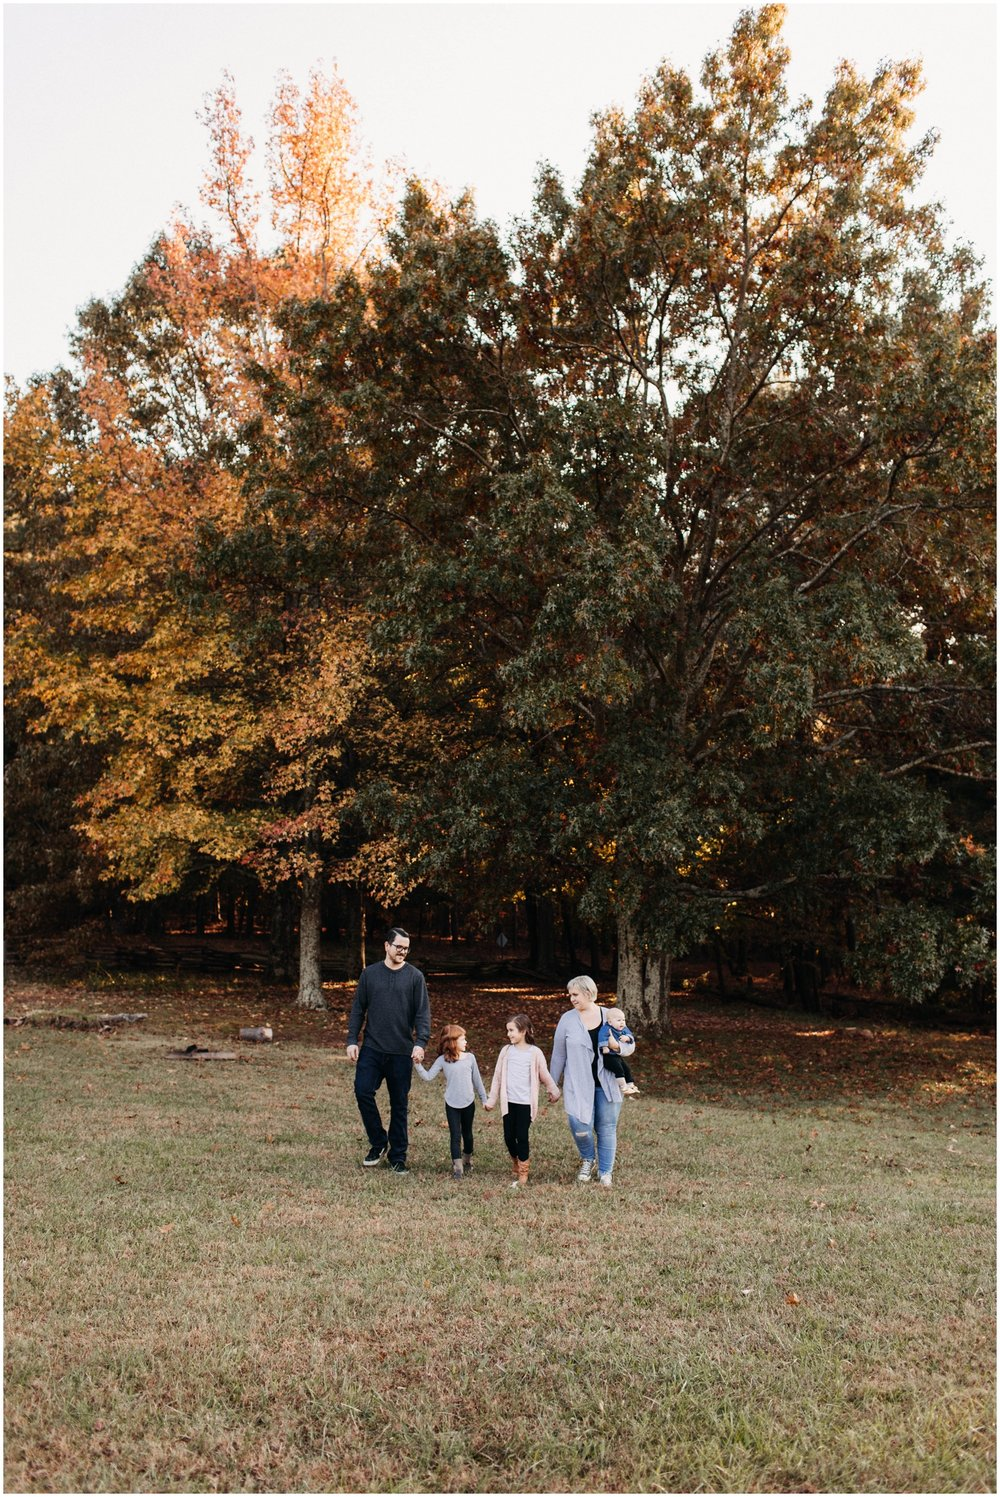 the_fosburghs_adventure_family_session_unposed_families_portraits_0090.jpg